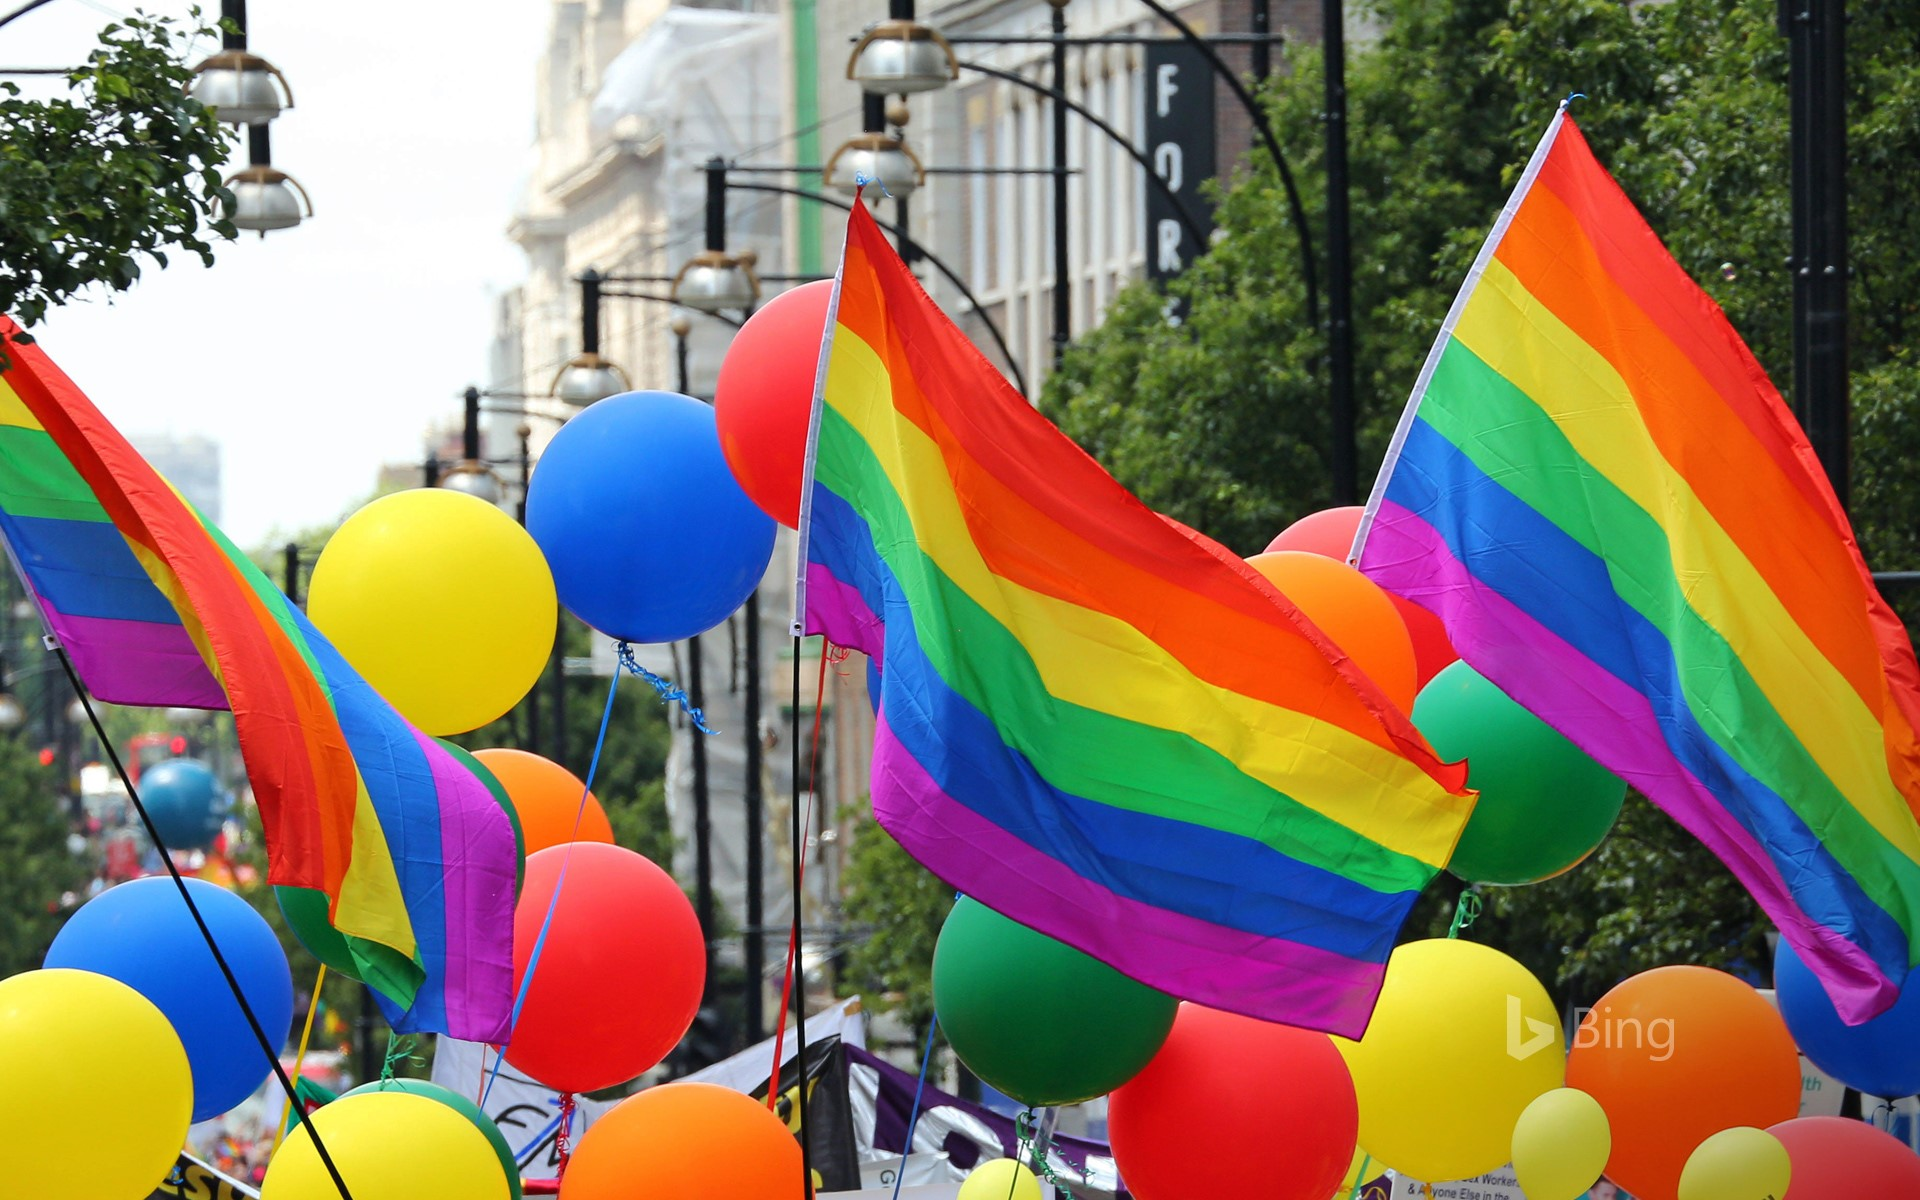 The Pride parade in London